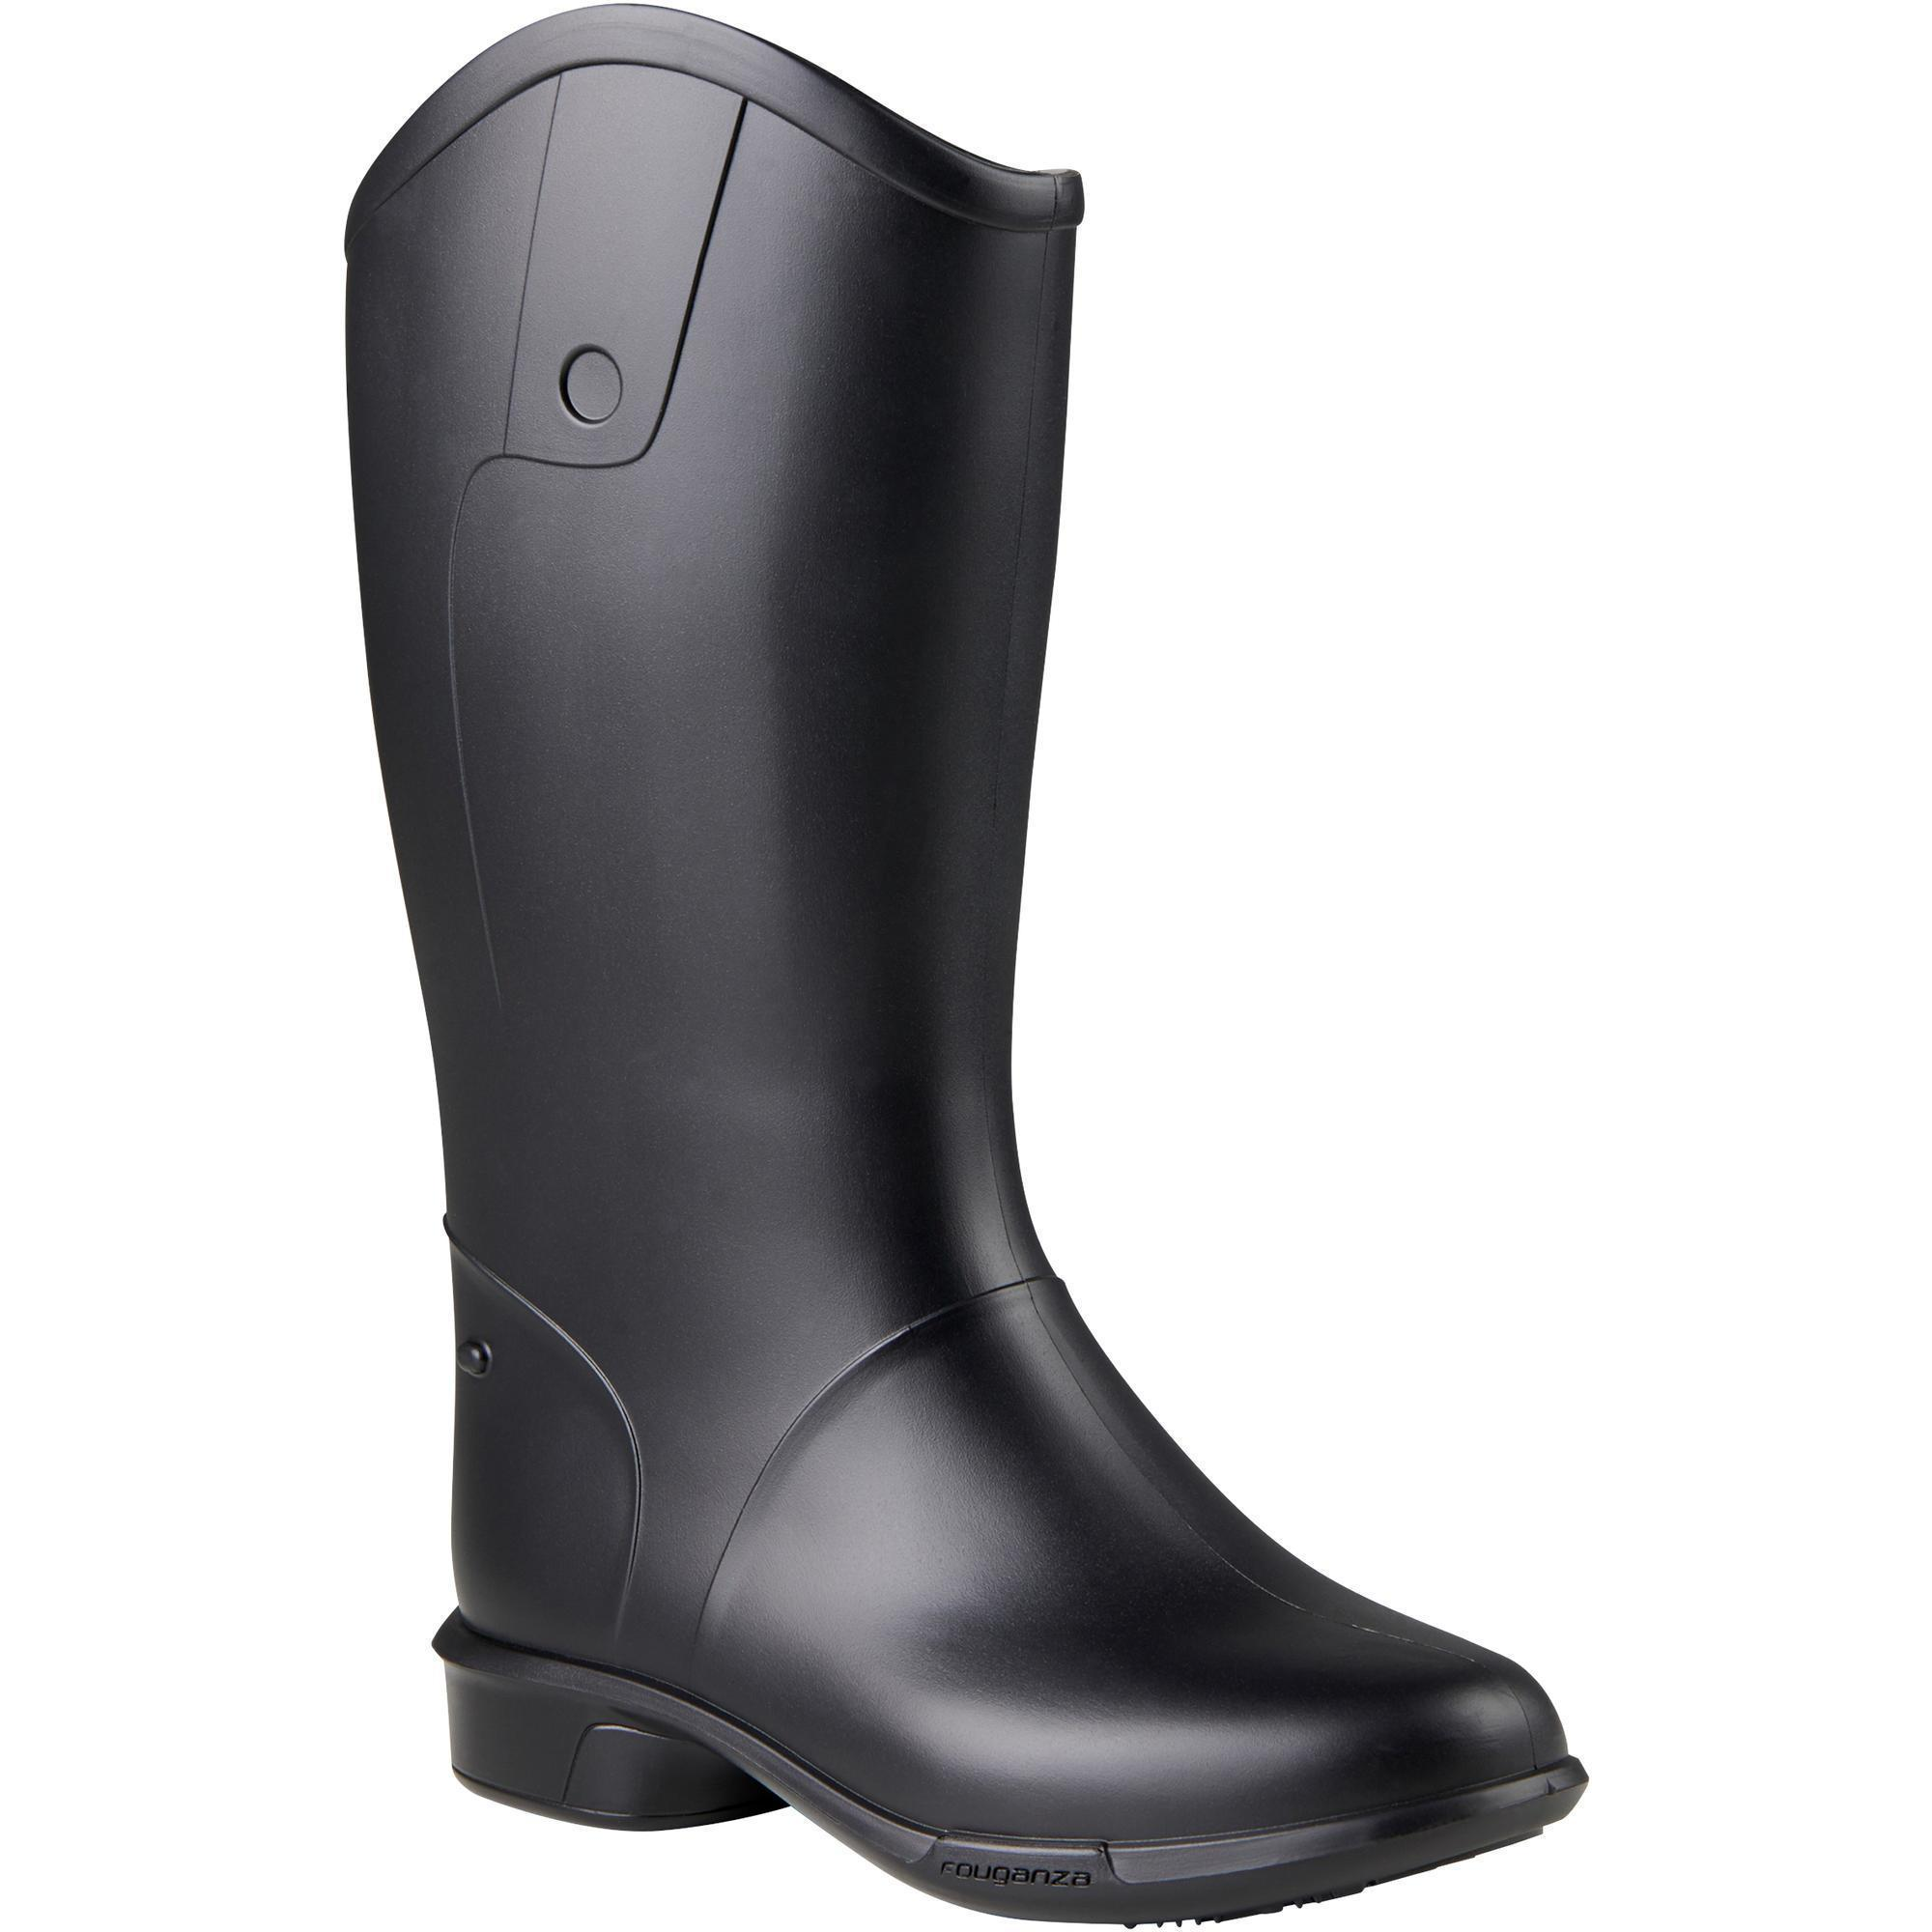 100 Schooling Baby Children's Horse Riding Boots | Fouganza